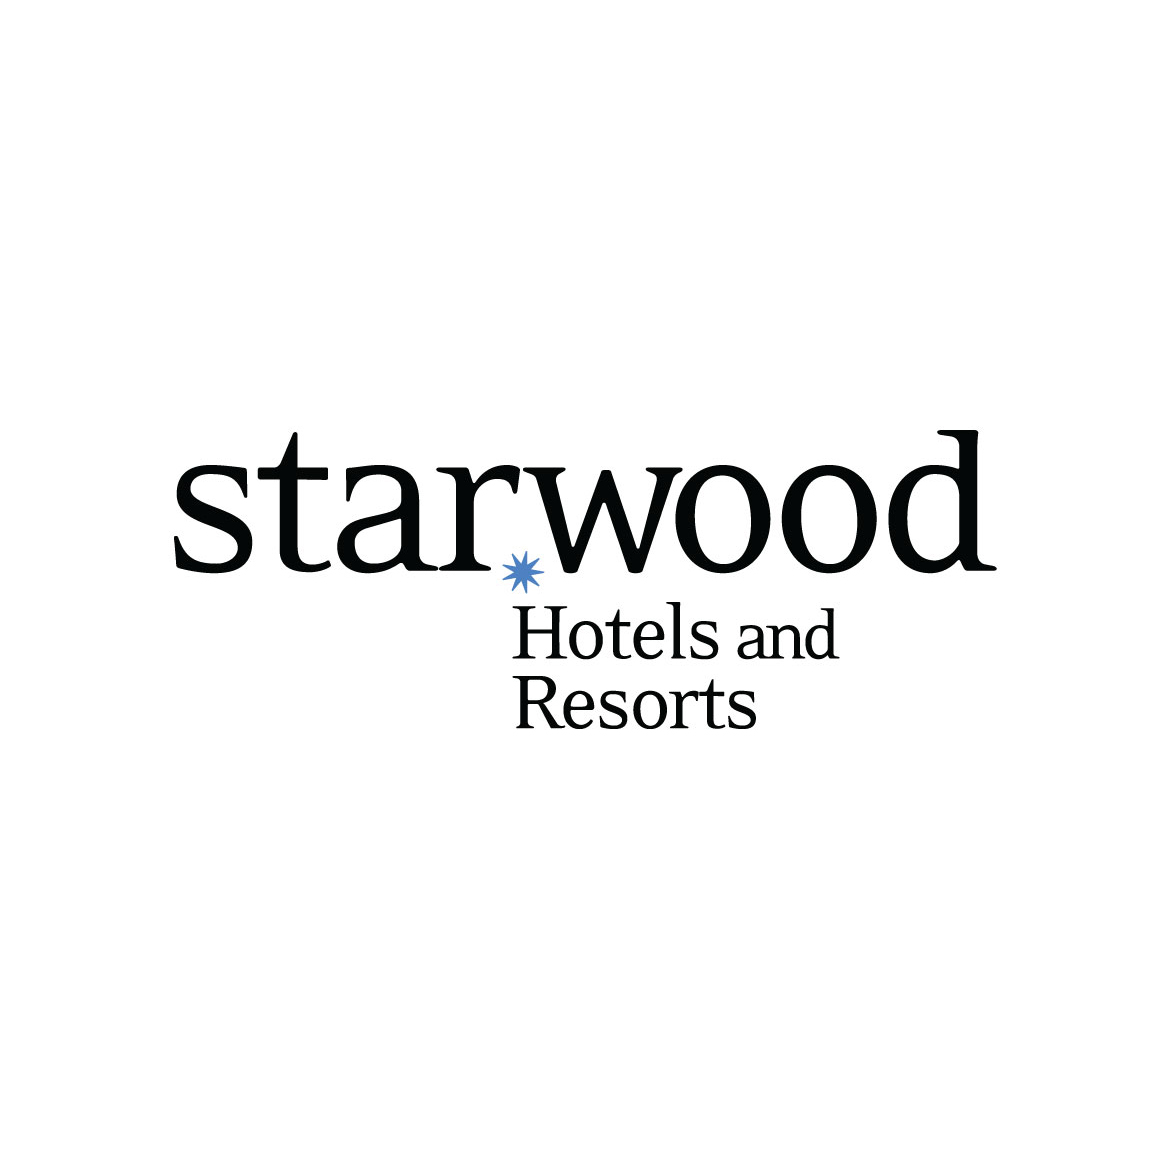 starwoodhotels.com with Starwood Hotels Coupons & Code Promo